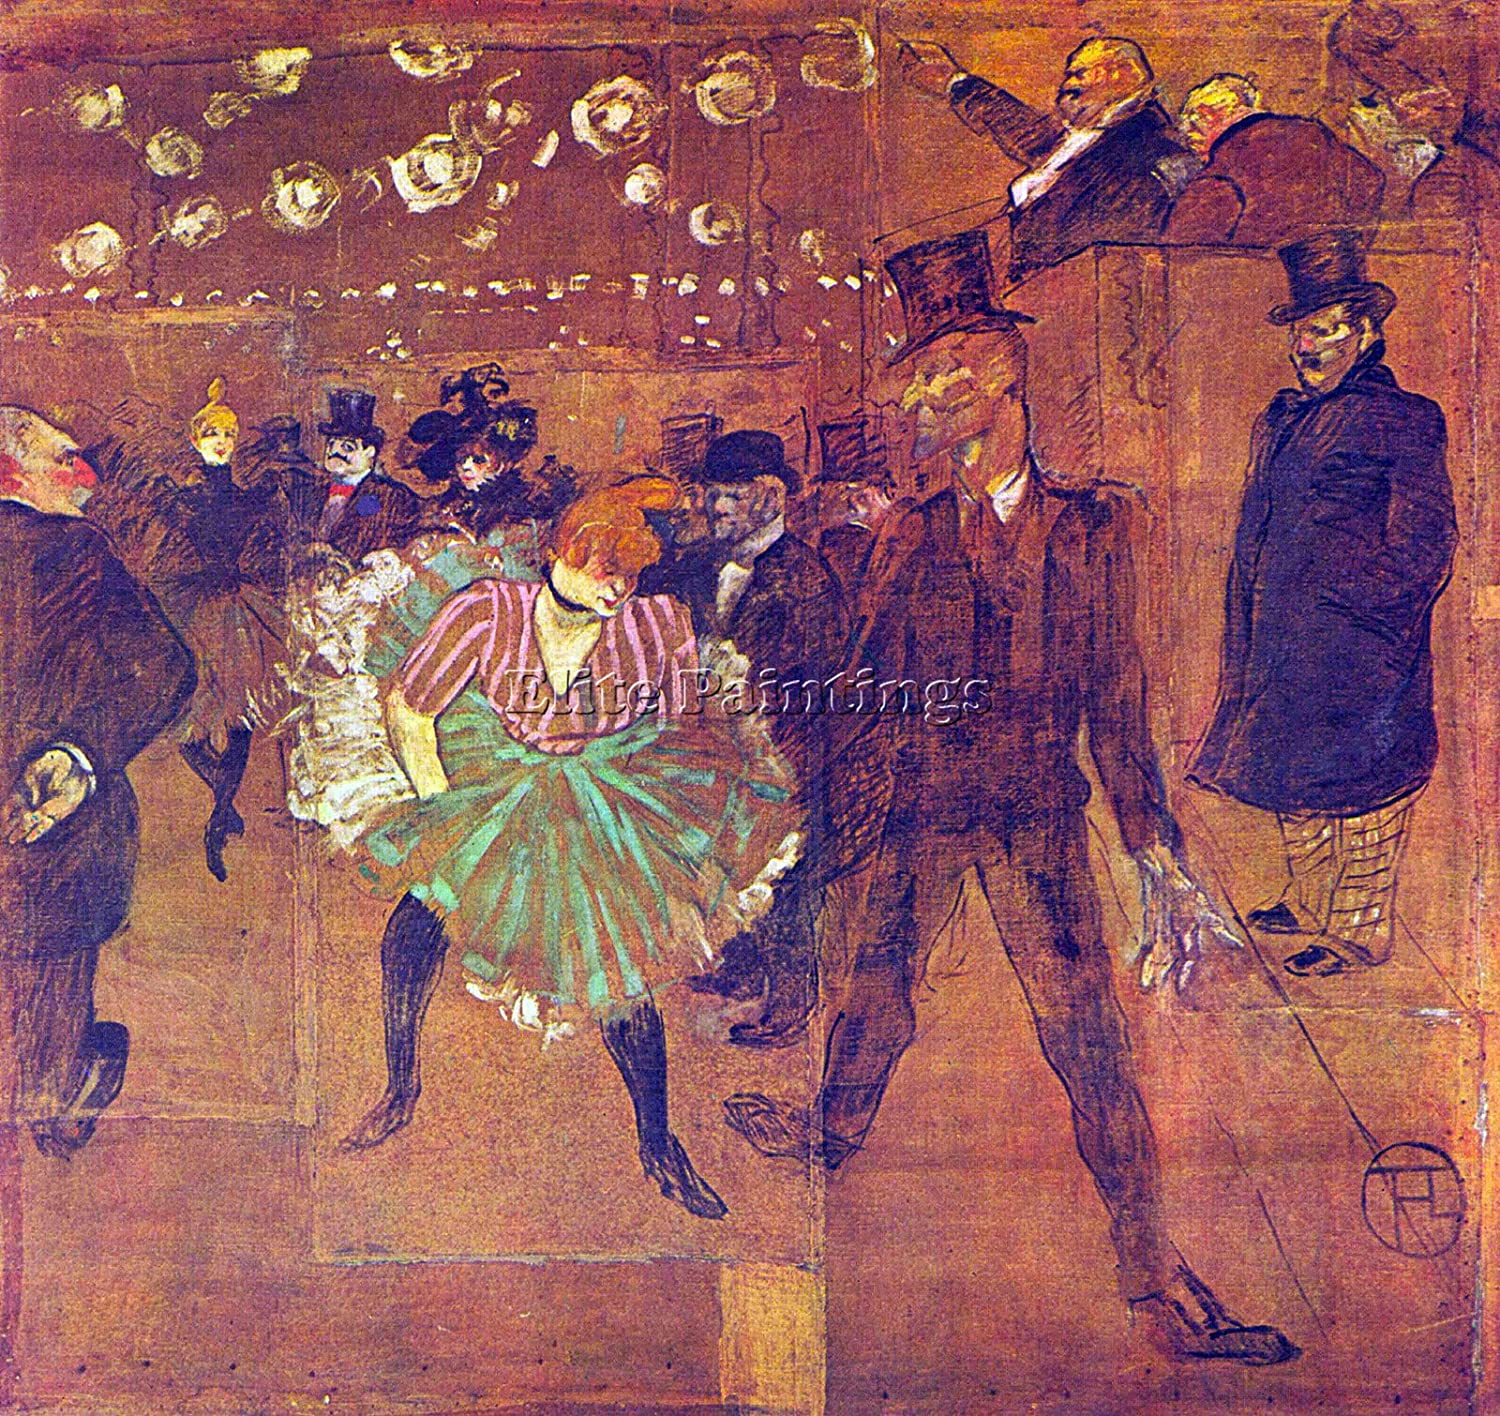 BALL AT MOULIN ROUGE BY TOULOUSE LAUTREC ARTIST PAINTING OIL CANVAS REPRO ART 40x40inch MUSEUM QUALITY